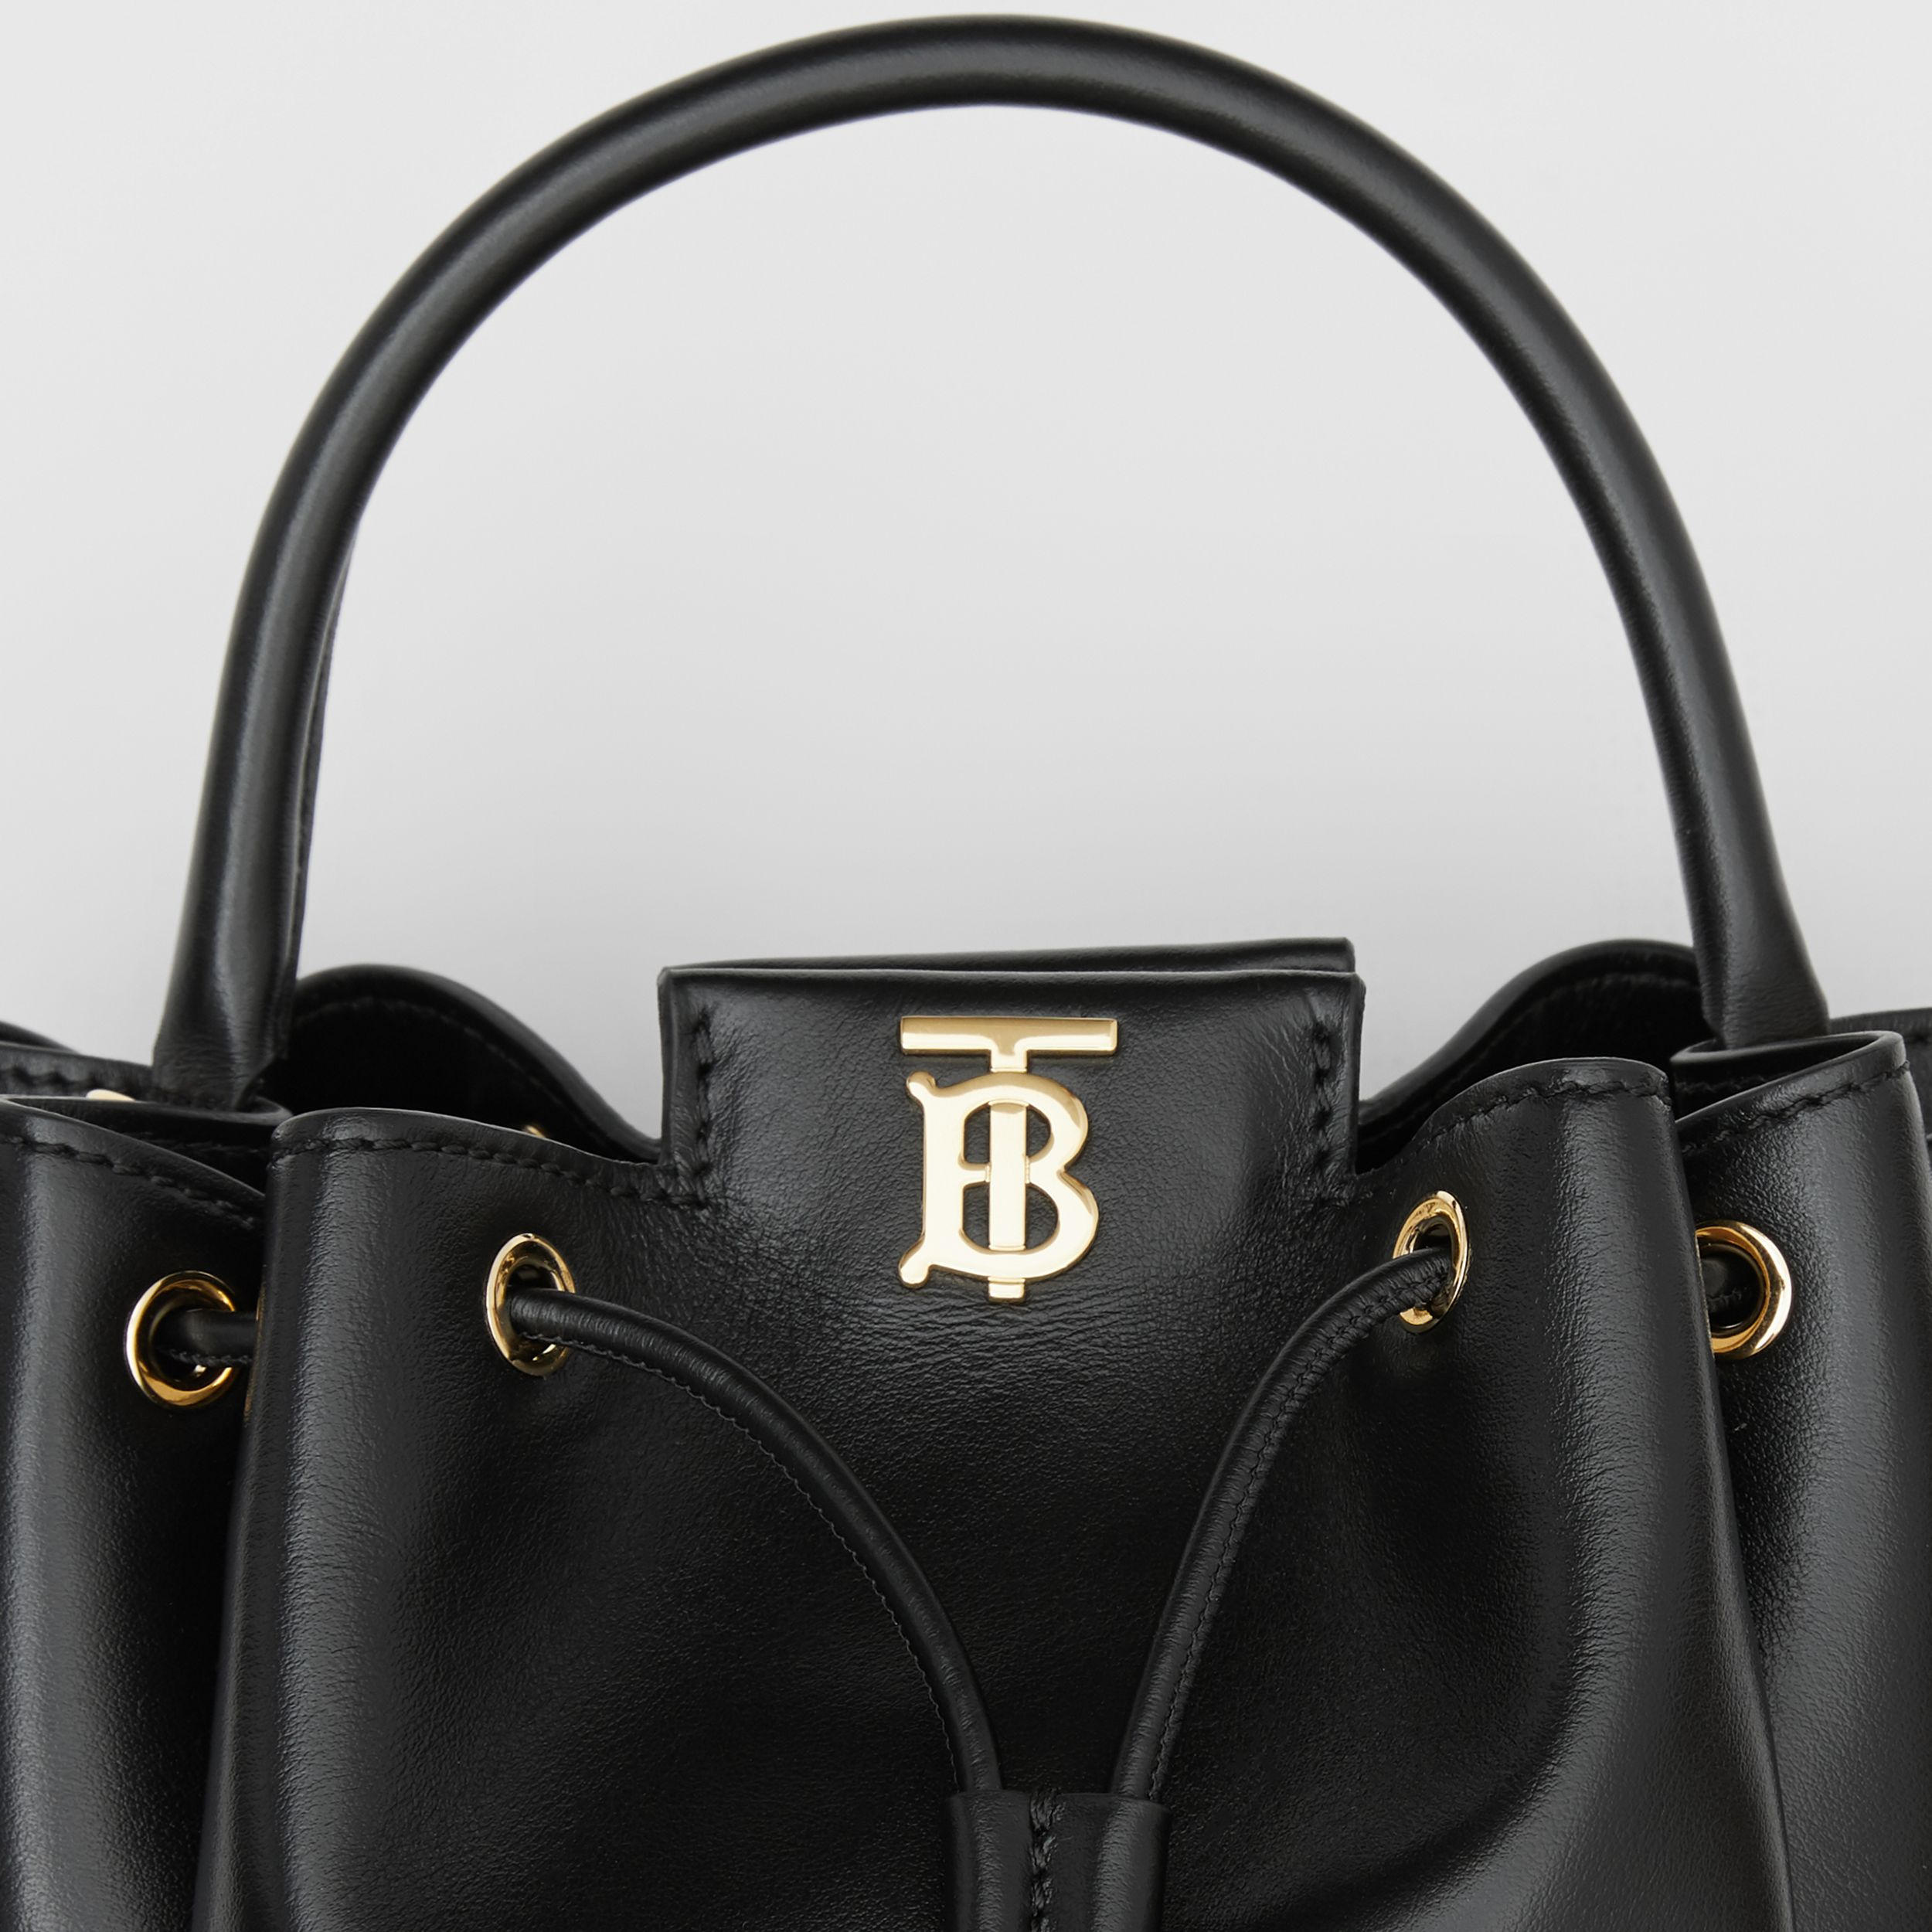 Monogram Motif Leather Bucket Bag in Black - Women | Burberry United States - 2